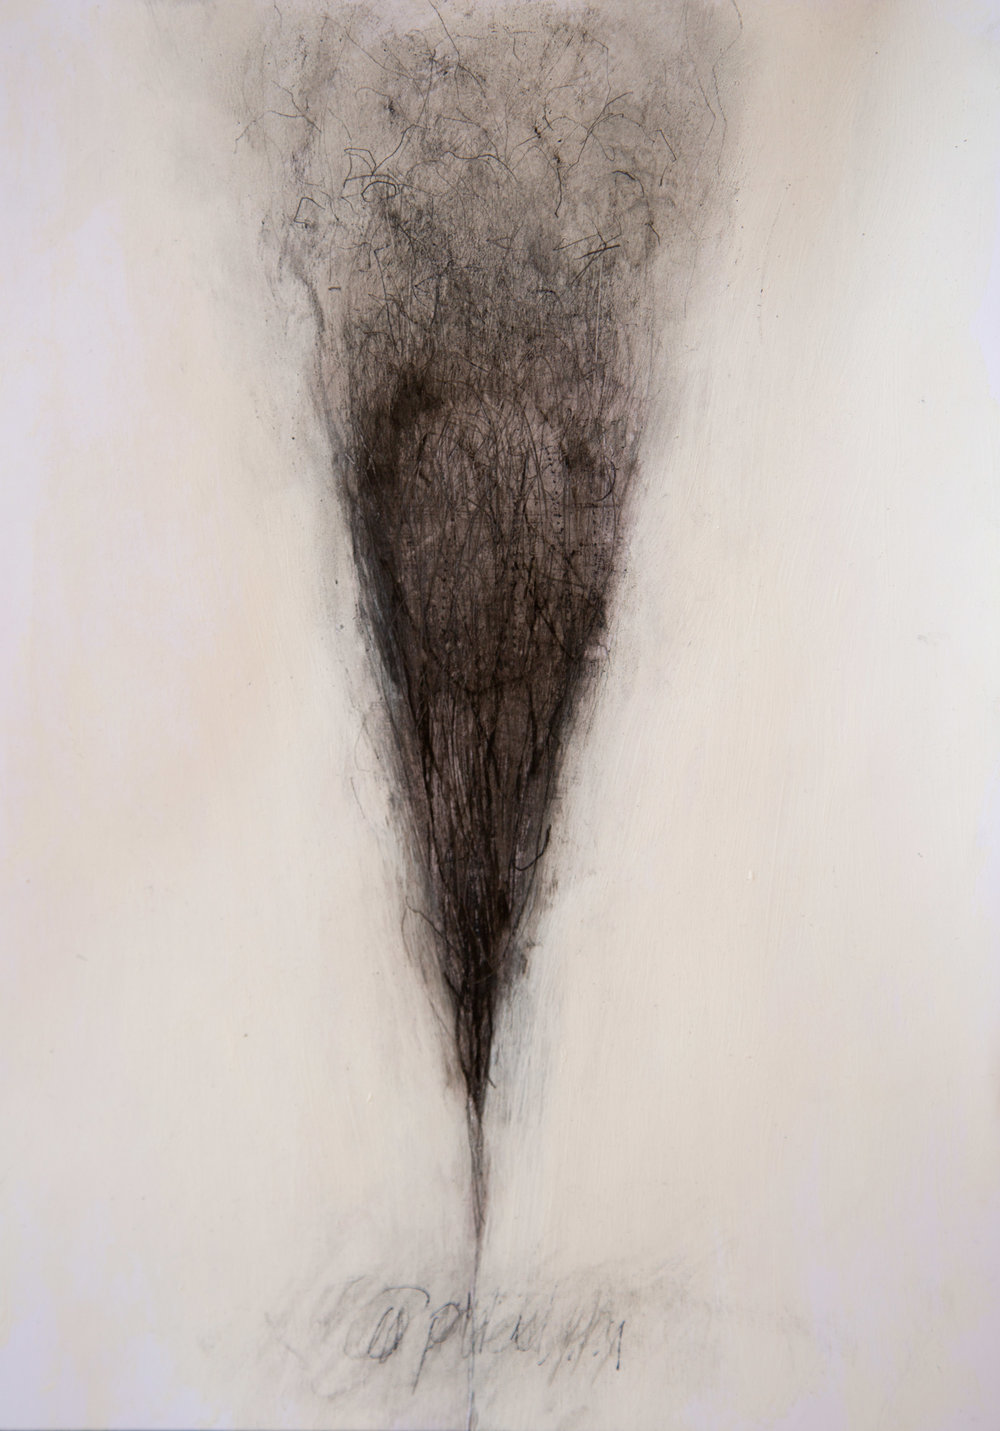 OPHELIA FADING, 297 x 210 mm,    pencil, charcoal and oil wash on prepared paper  , 2016.